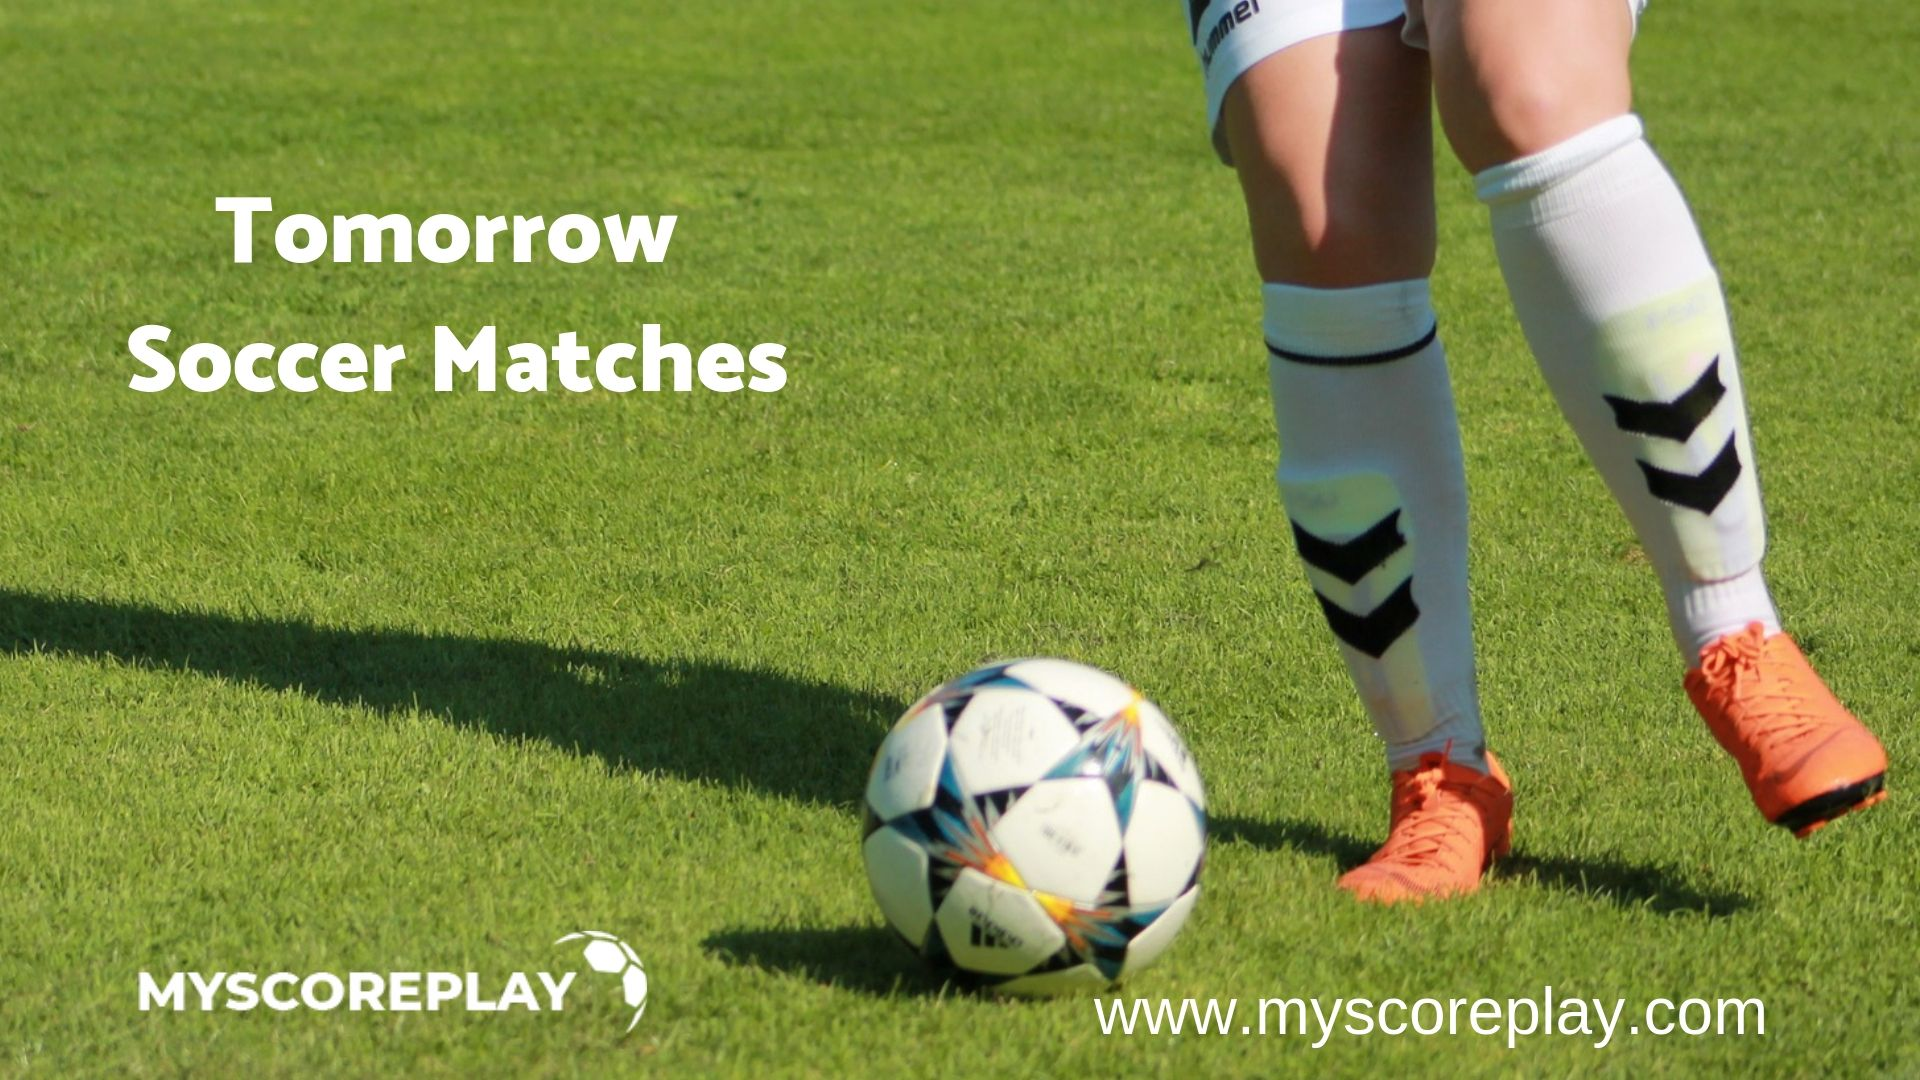 Free football betting tips for tomorrow meaning of 1x in betting what is over/under